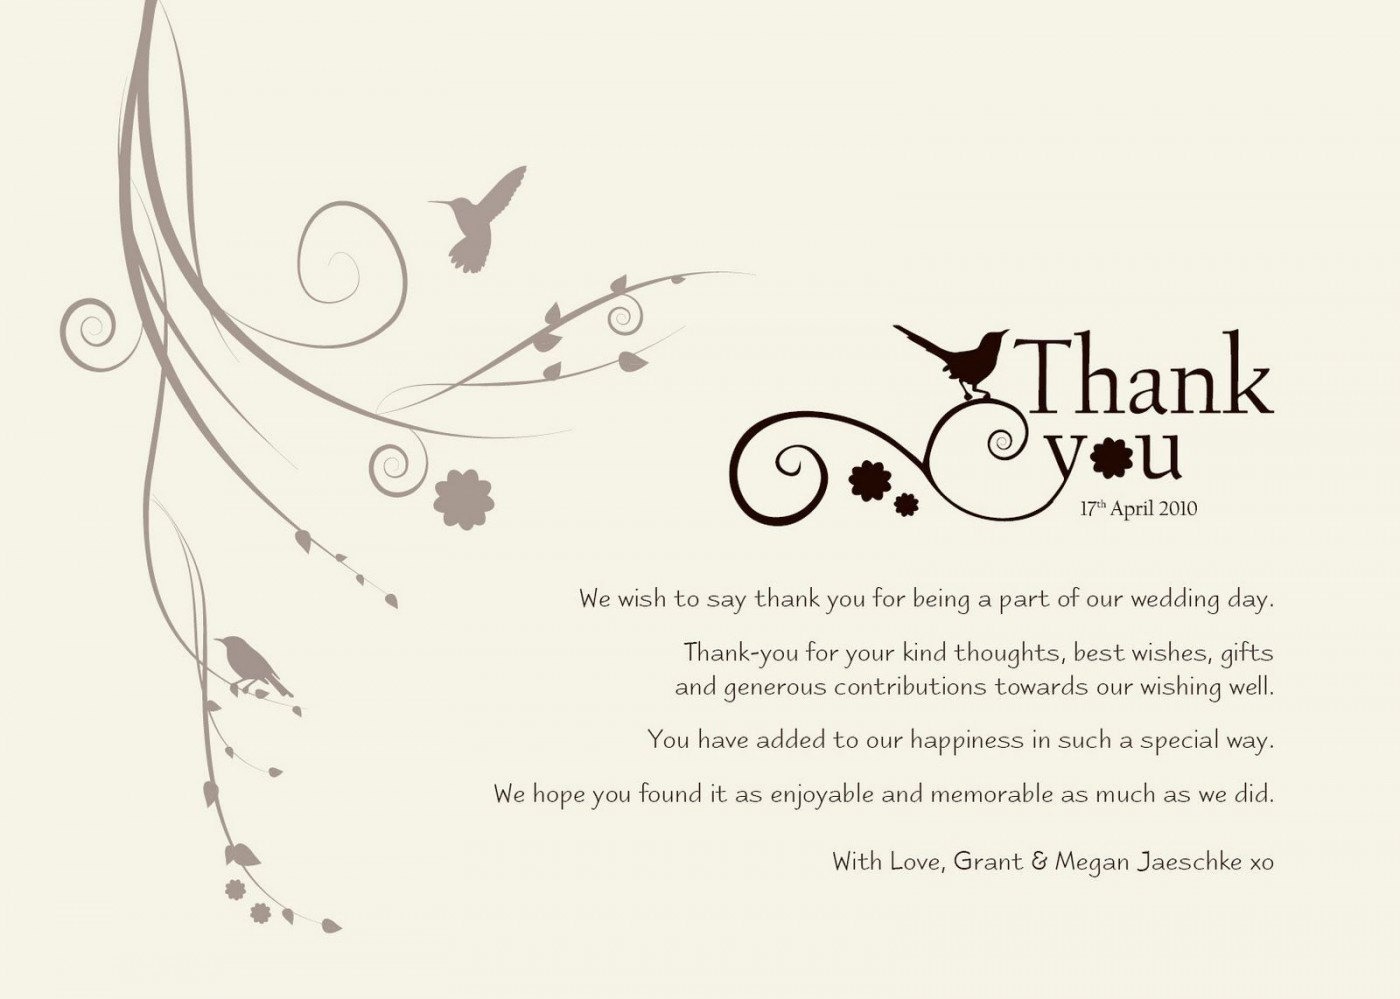 003 Astounding Wedding Thank You Card Template High Definition  Photoshop Word Etsy1400